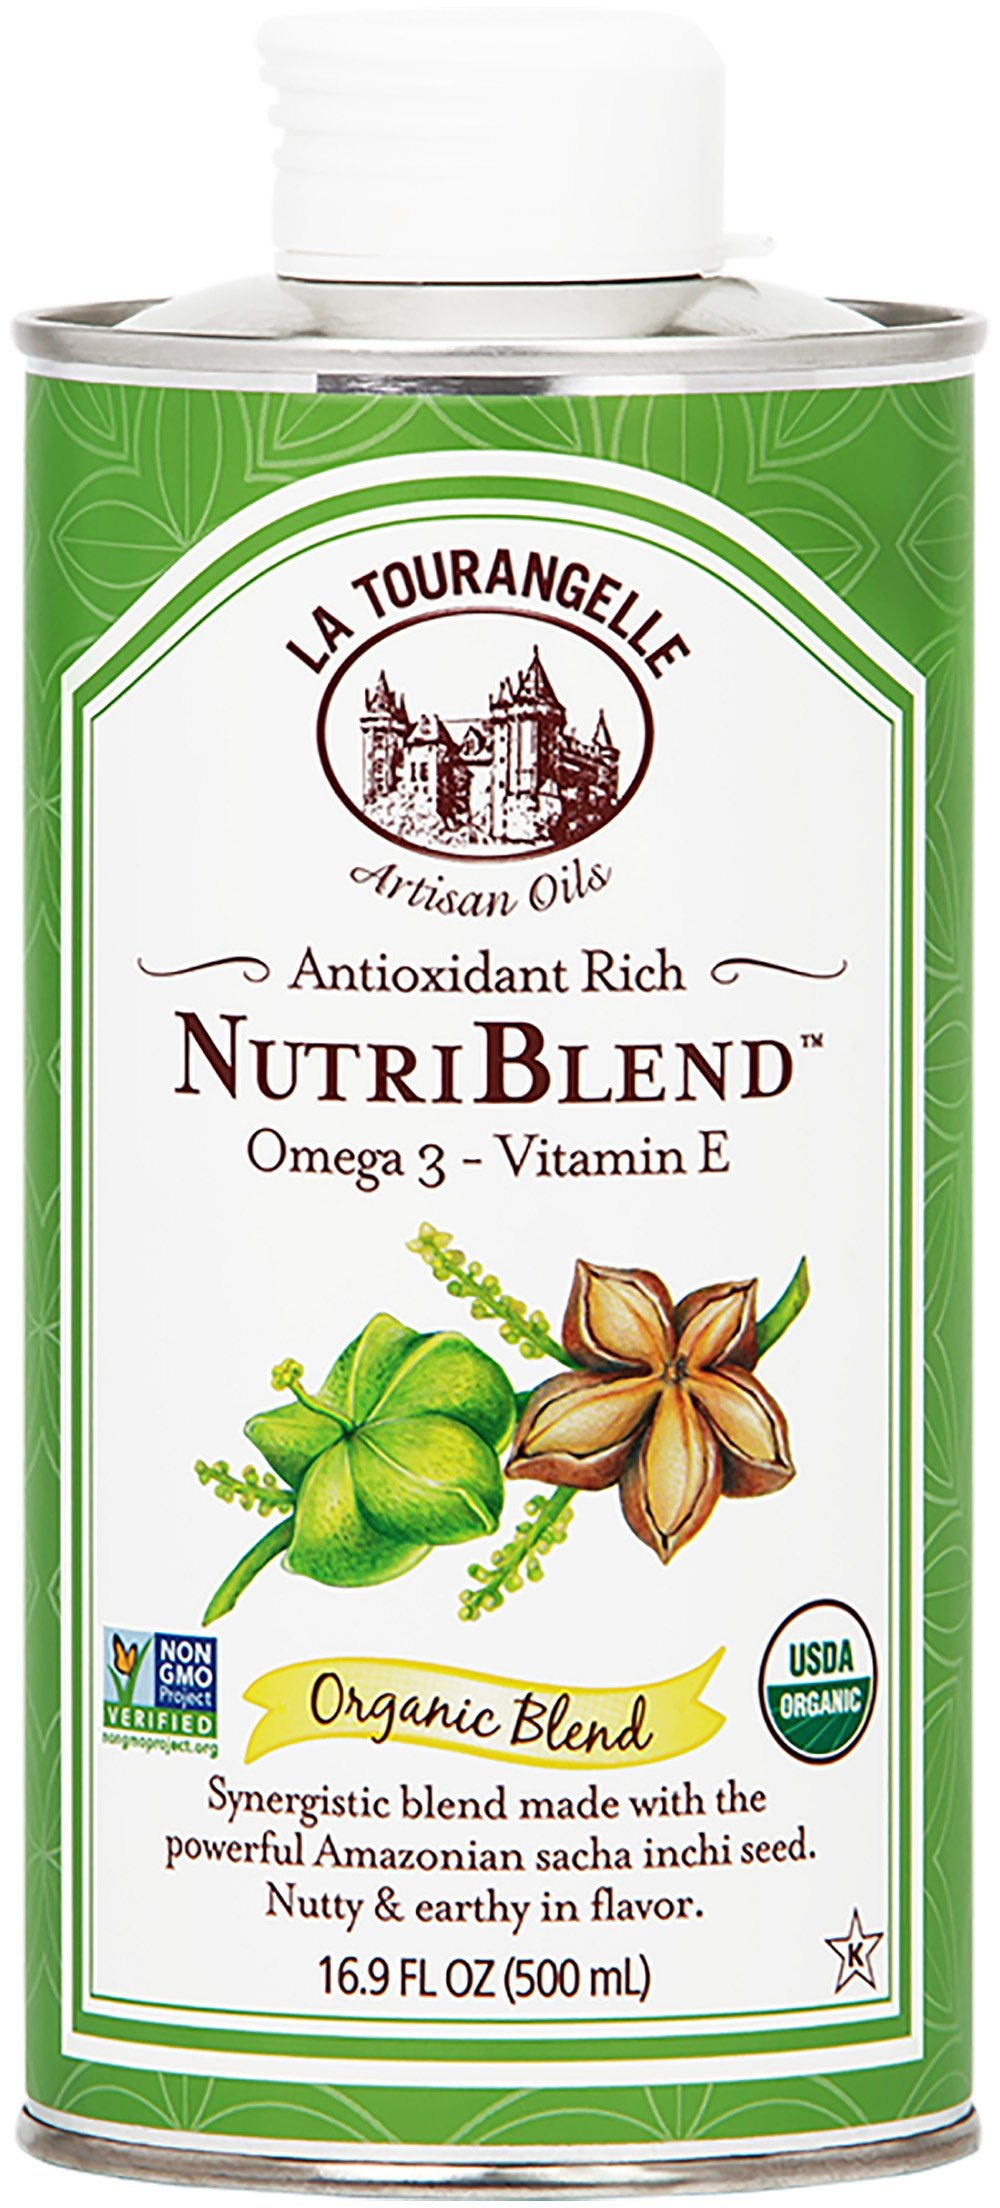 La Tourangelle Amazonian Nutriblend 16.9 Fl. Oz., Made from Amazonian Sacha Inchi Seed with Omega 3, Vitamin E, Nutty Flavor by La Tourangelle